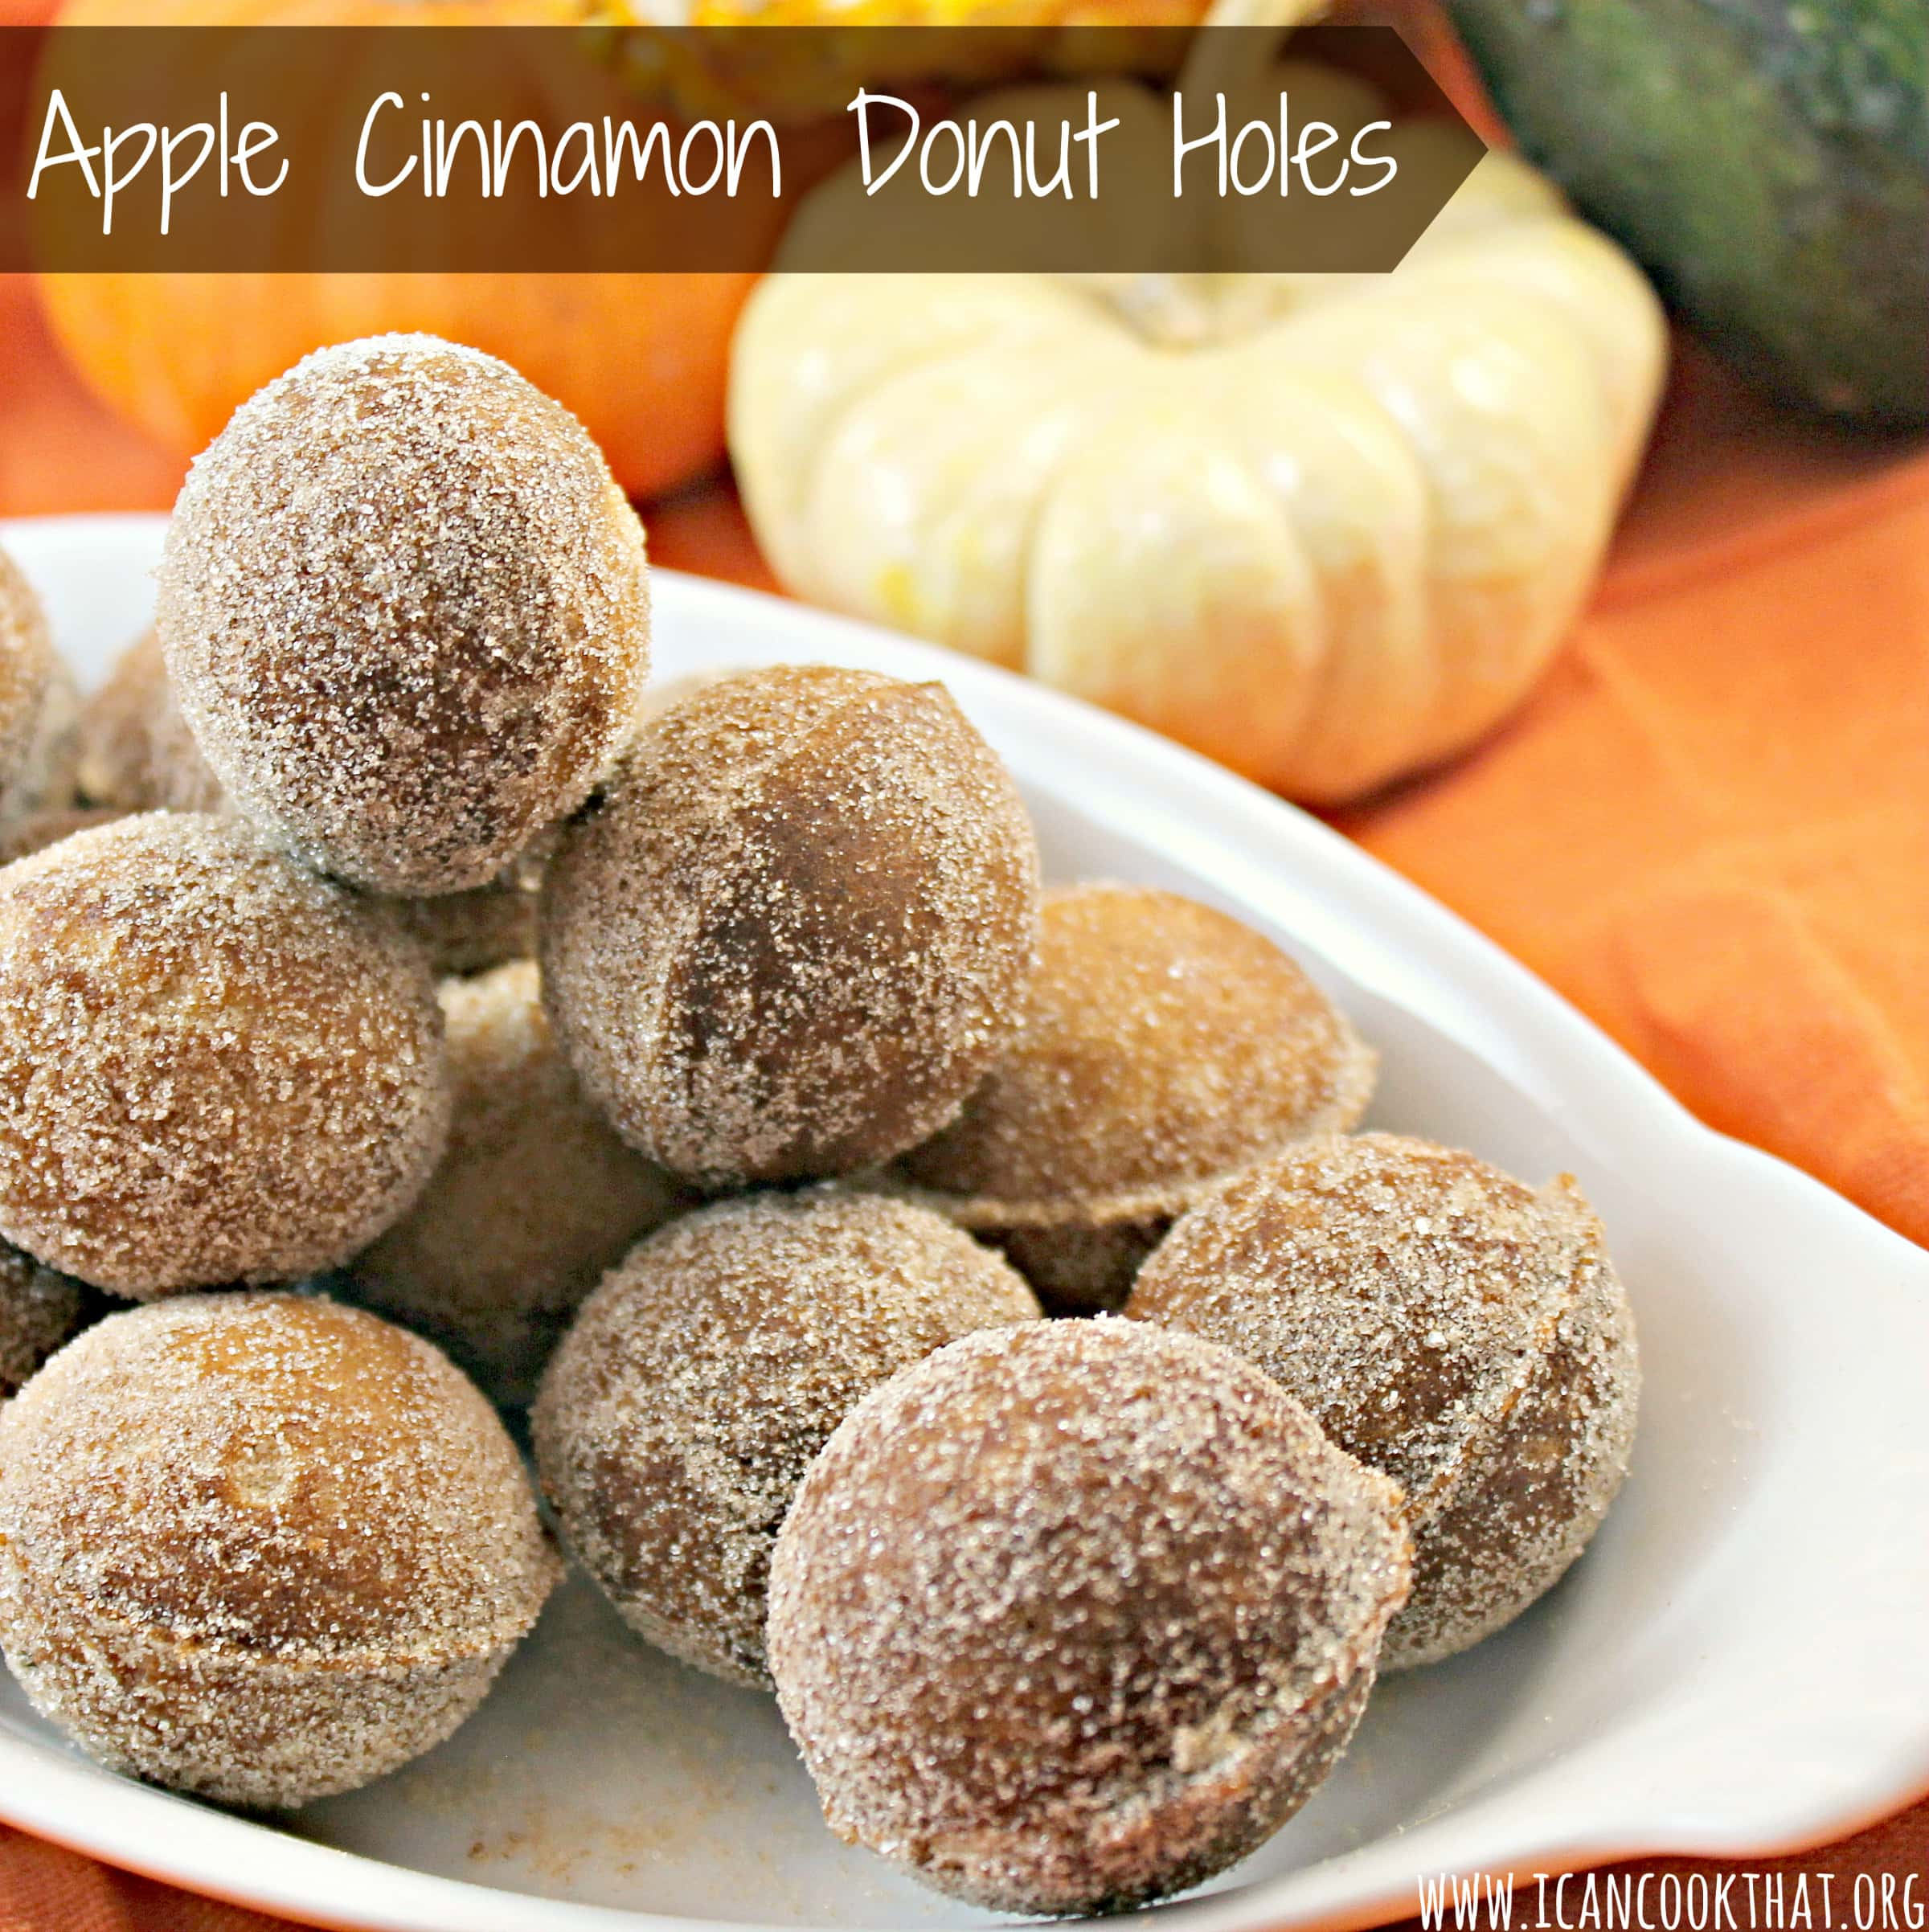 Apple Cinnamon Donut Holes Recipe I Can Cook That